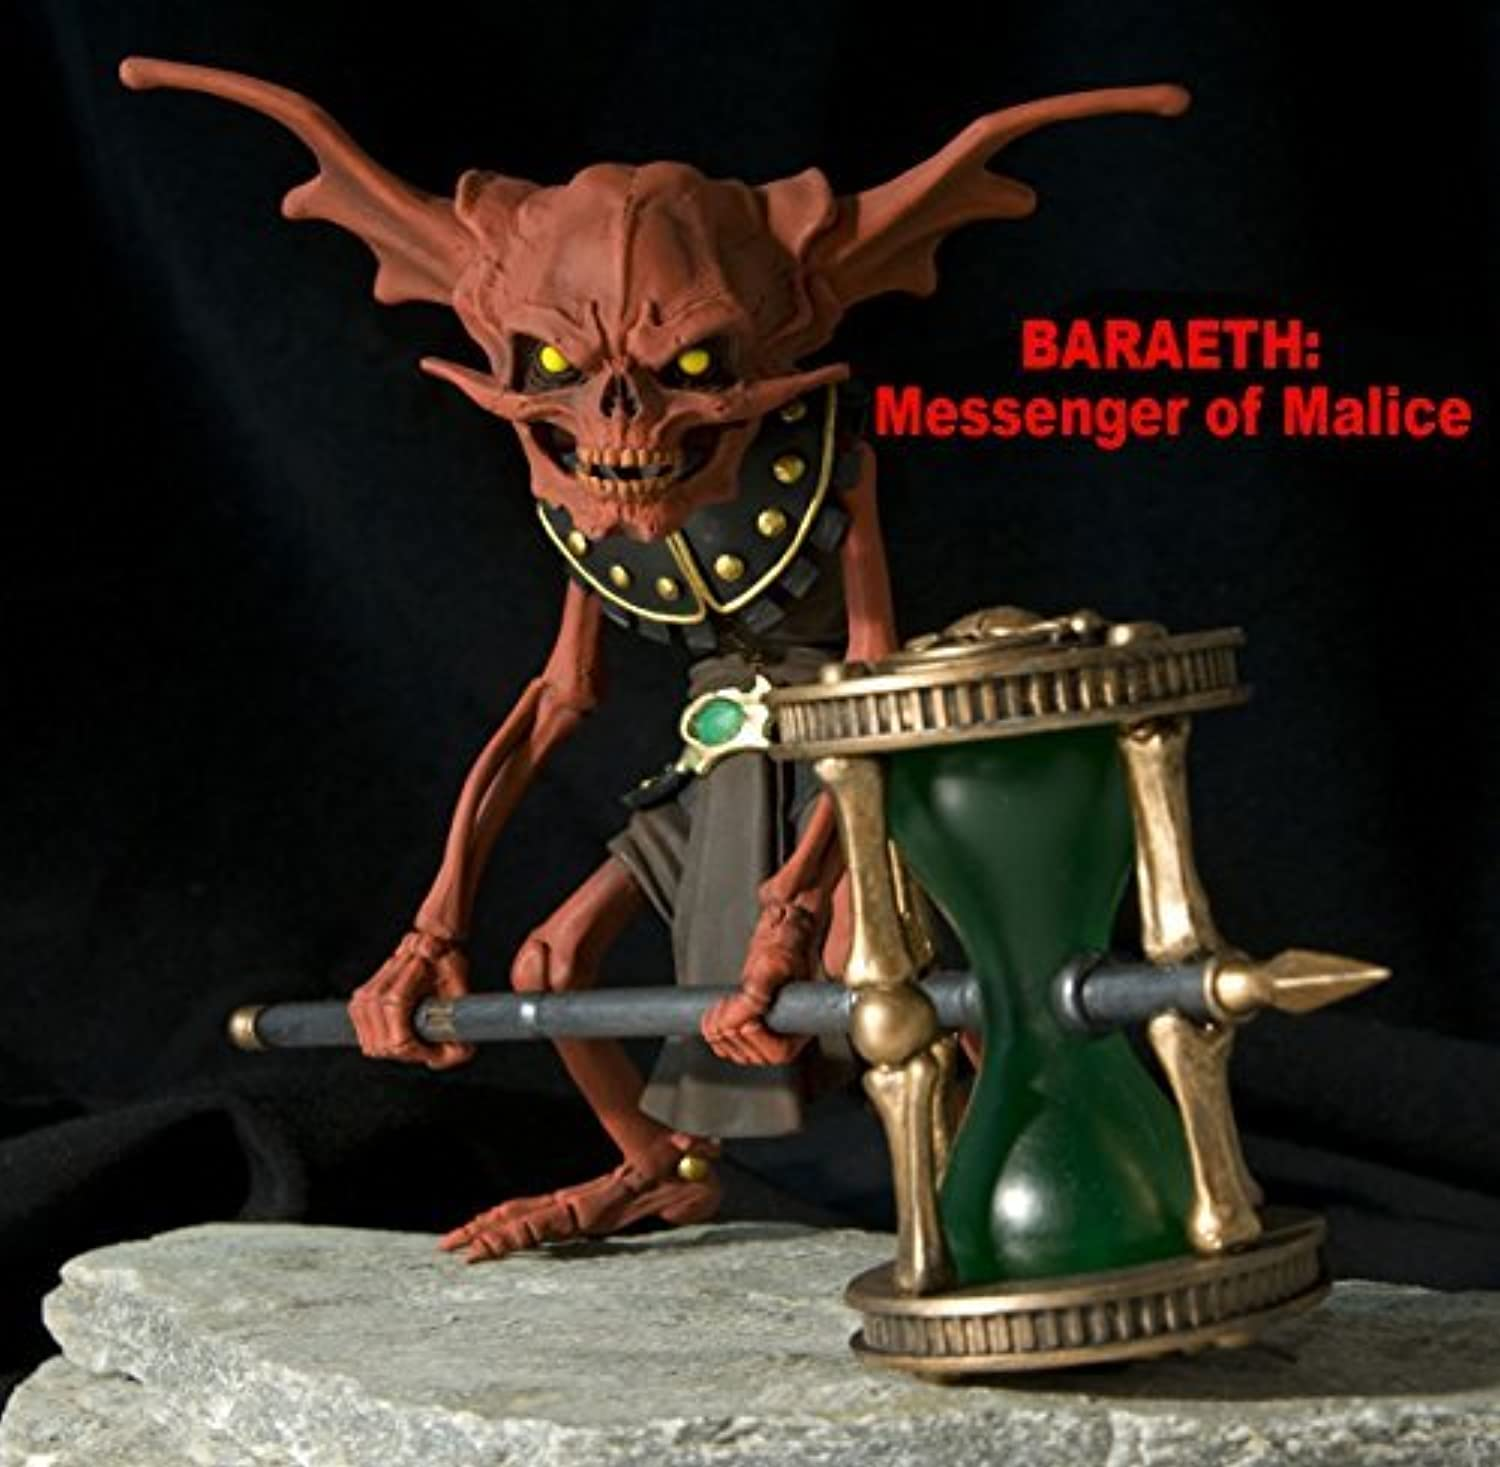 Gothitropolis rot Time Keeper Messenger of Malice Baraeth Action Figure by Four Horsemen